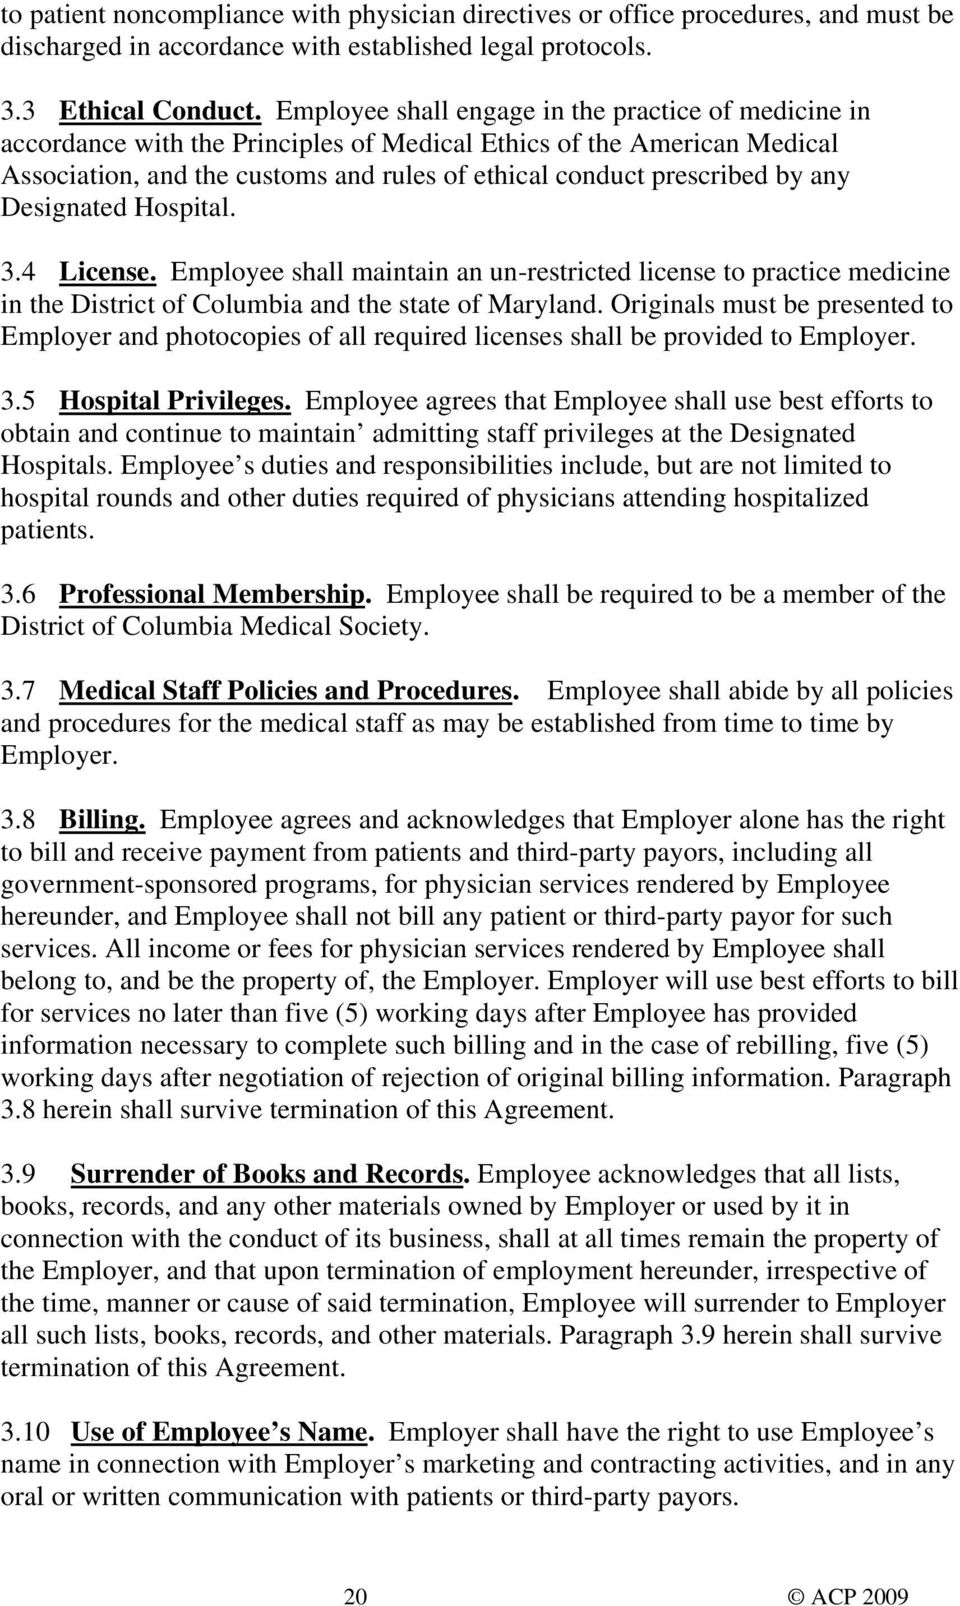 any Designated Hospital. 3.4 License. Employee shall maintain an un-restricted license to practice medicine in the District of Columbia and the state of Maryland.